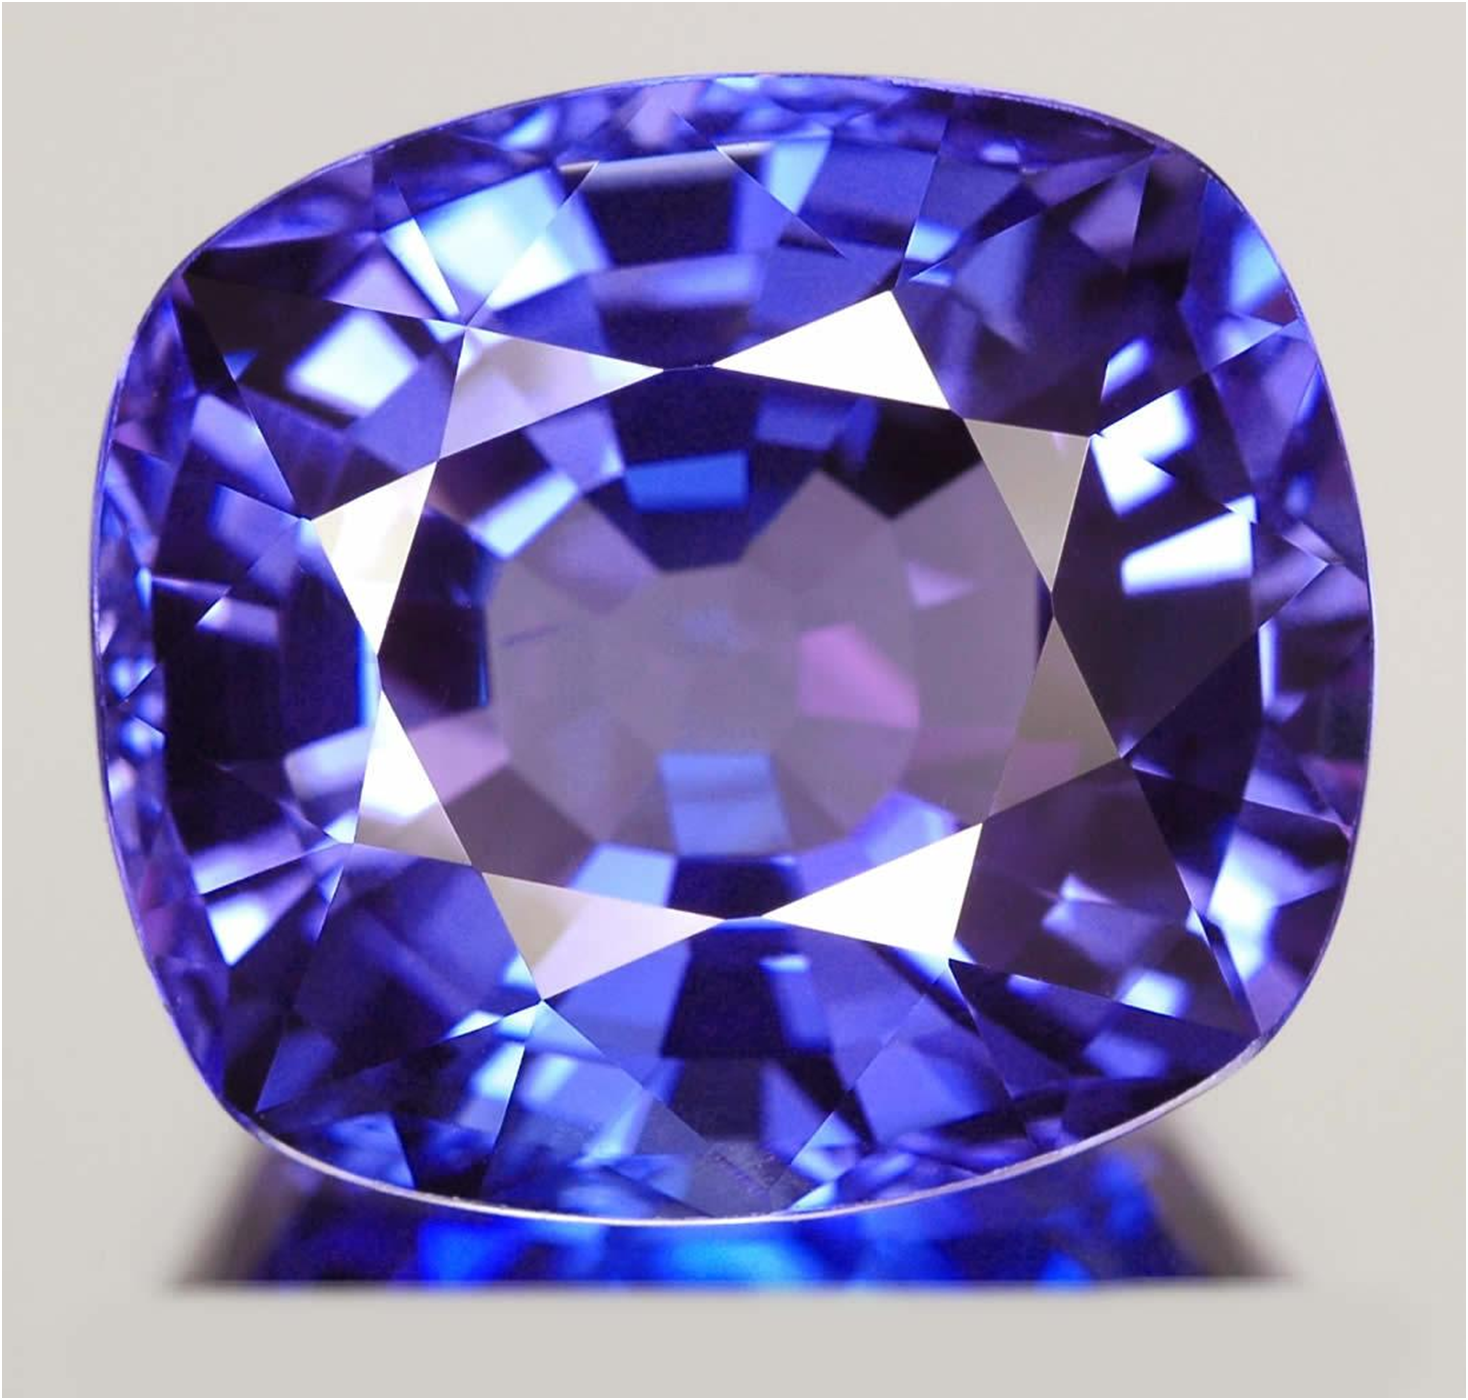 king available gemstone coloured loose tanzanite from stone fine sydney gems tanzania gemstones australia in pear